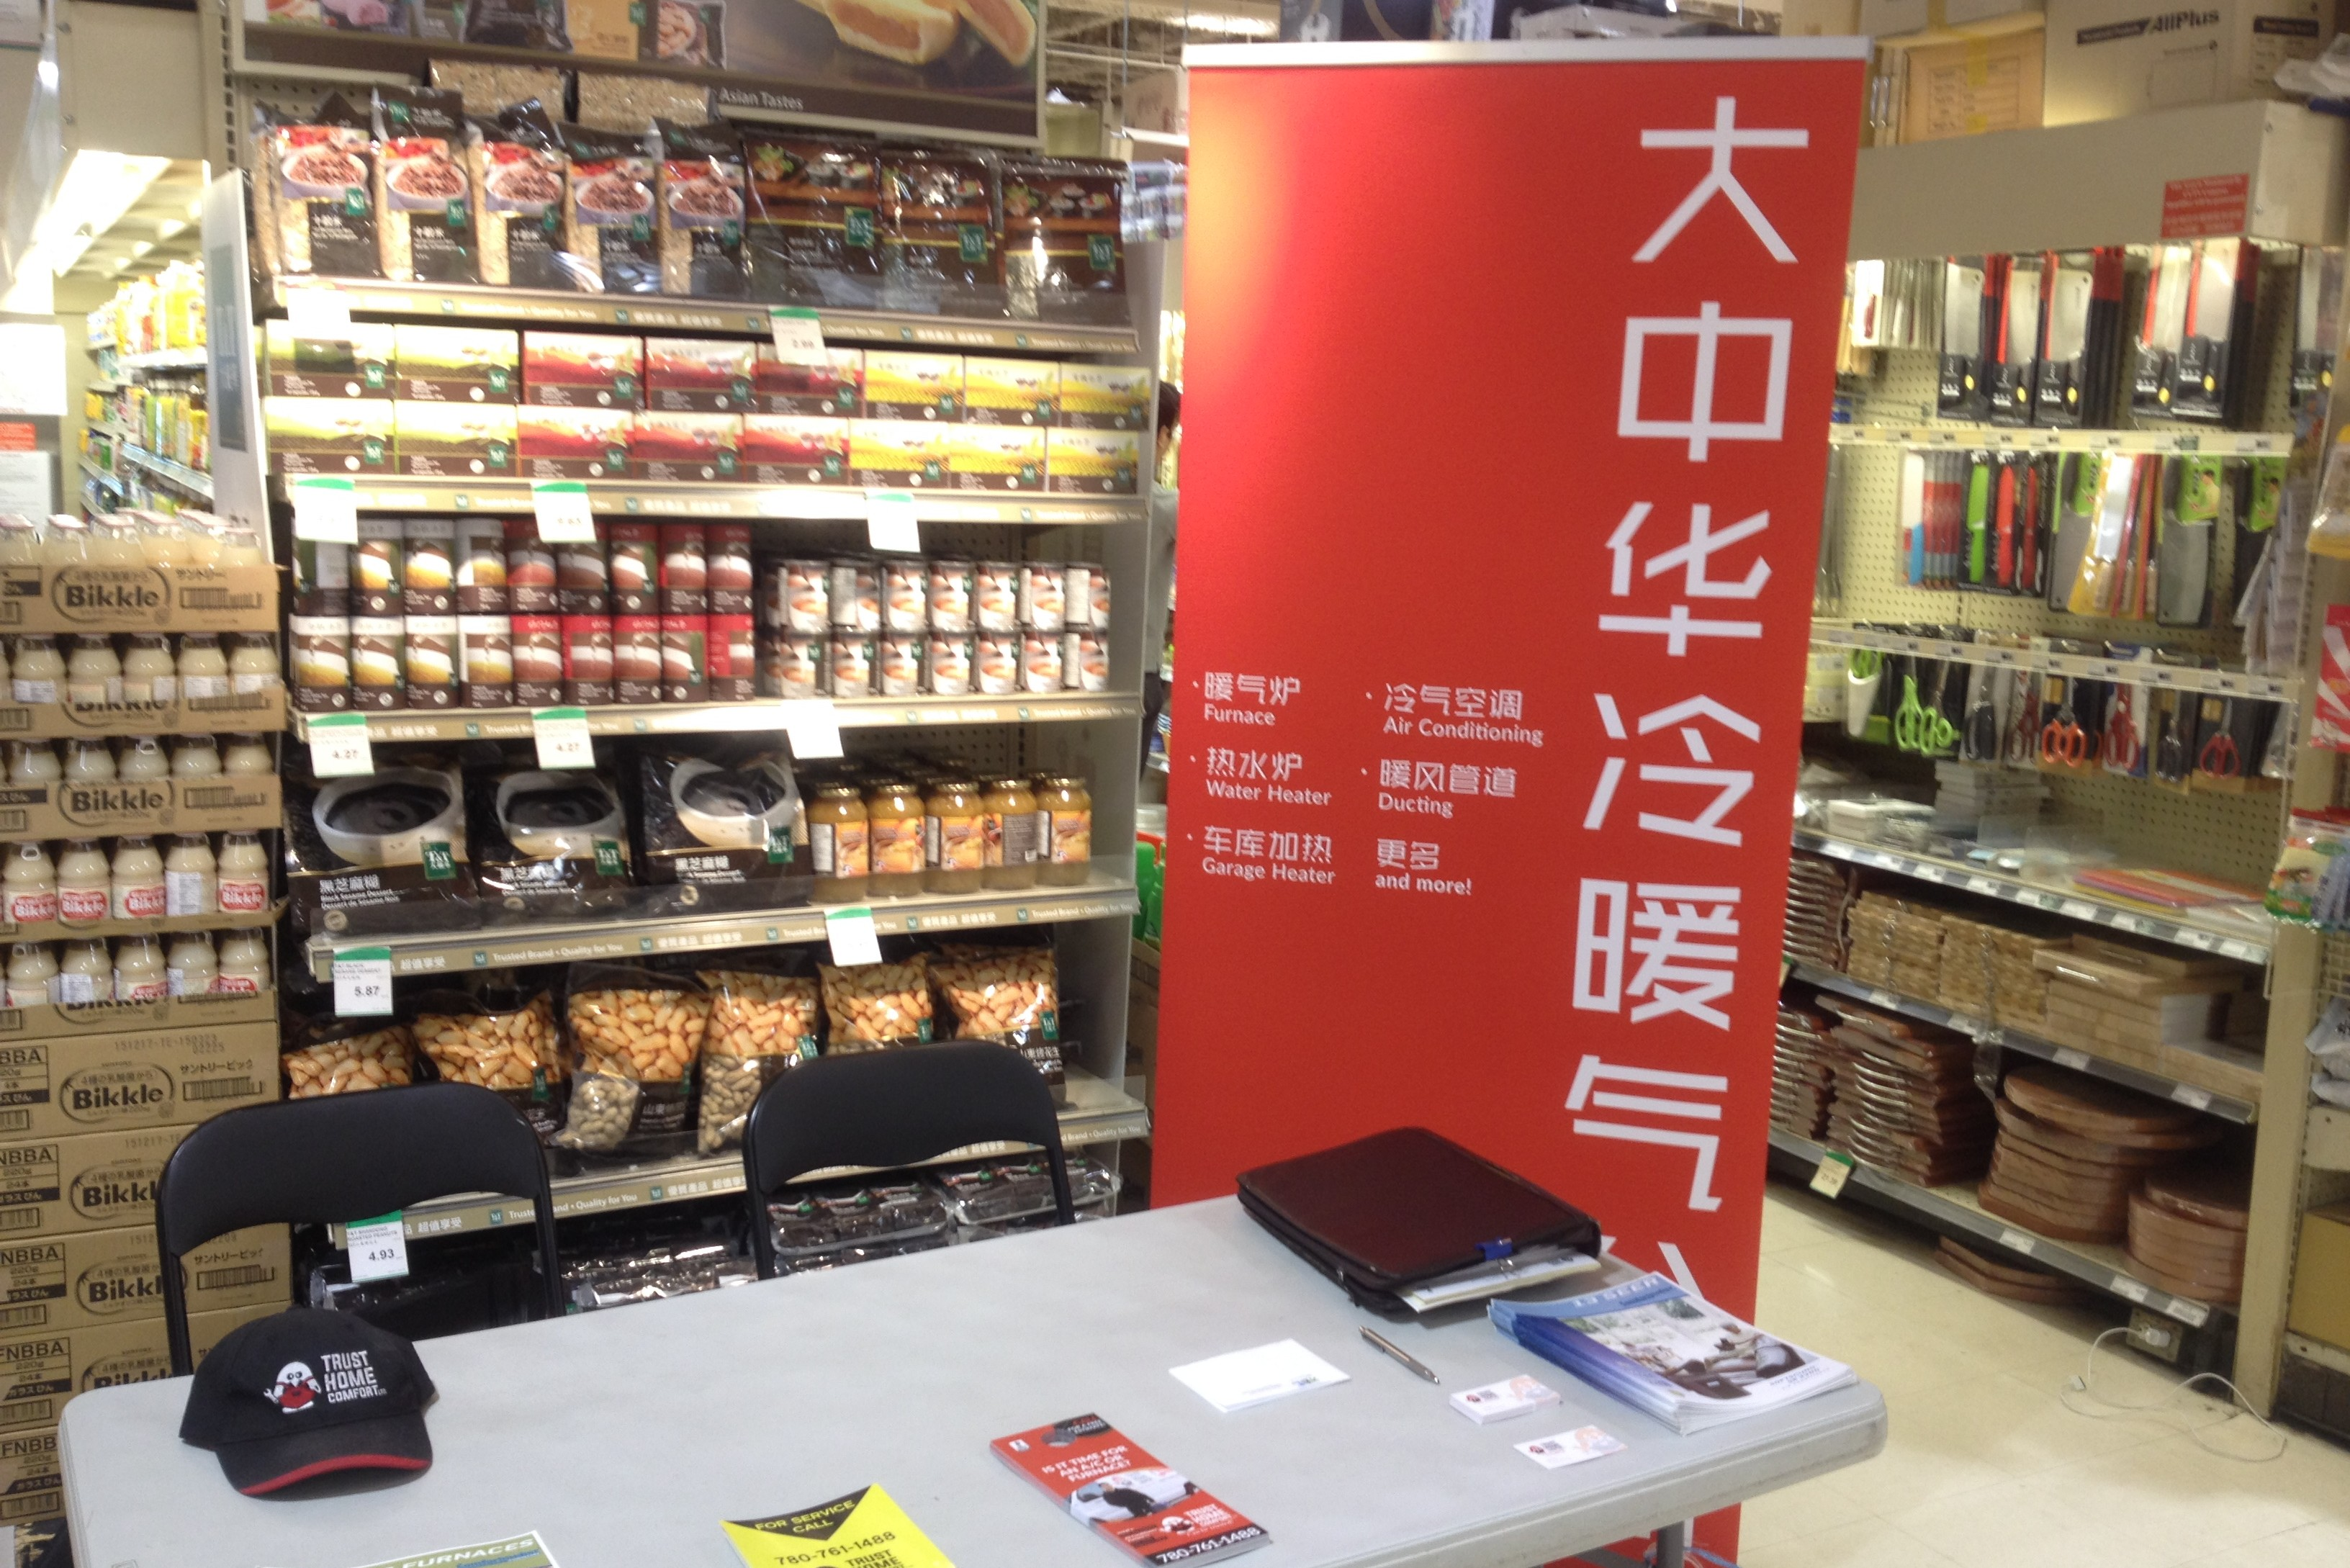 Our booth in WEM T&T supermarket